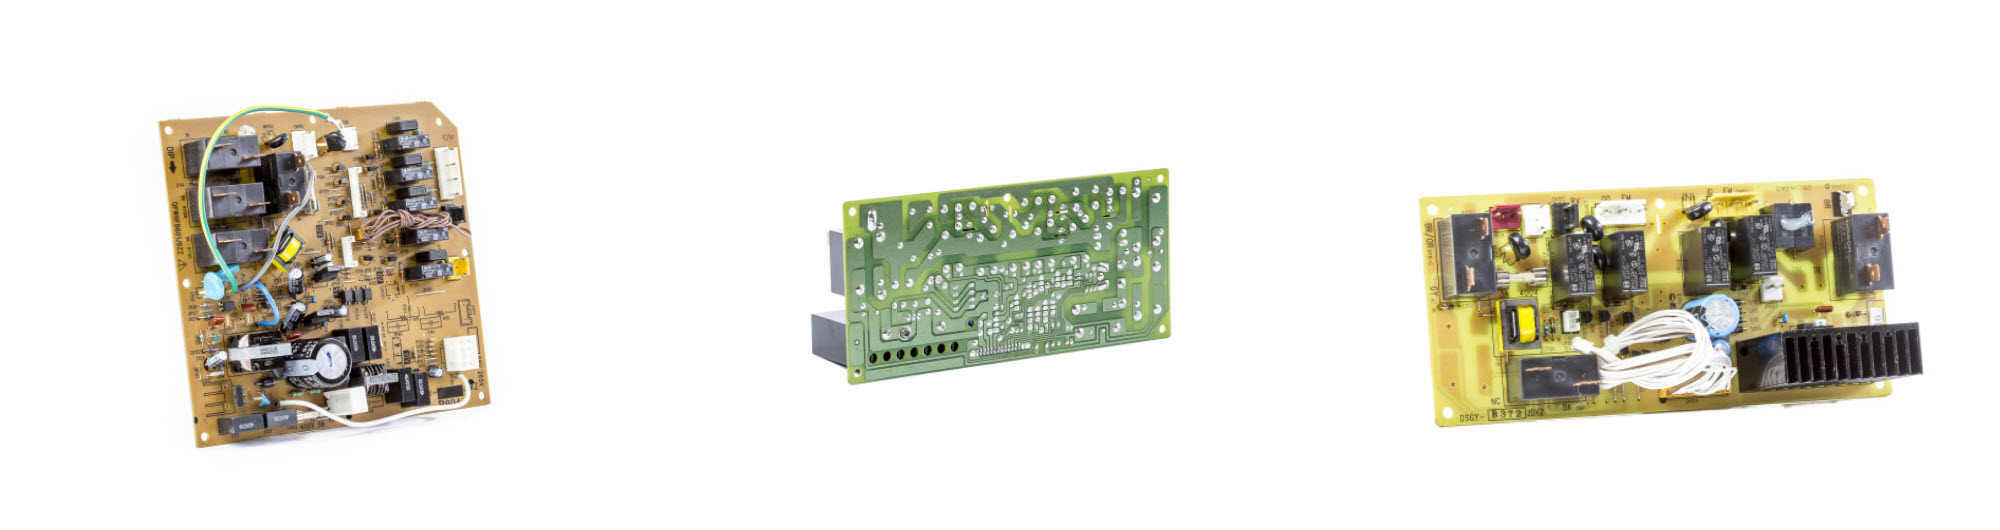 GE PTAC Control Boards Image